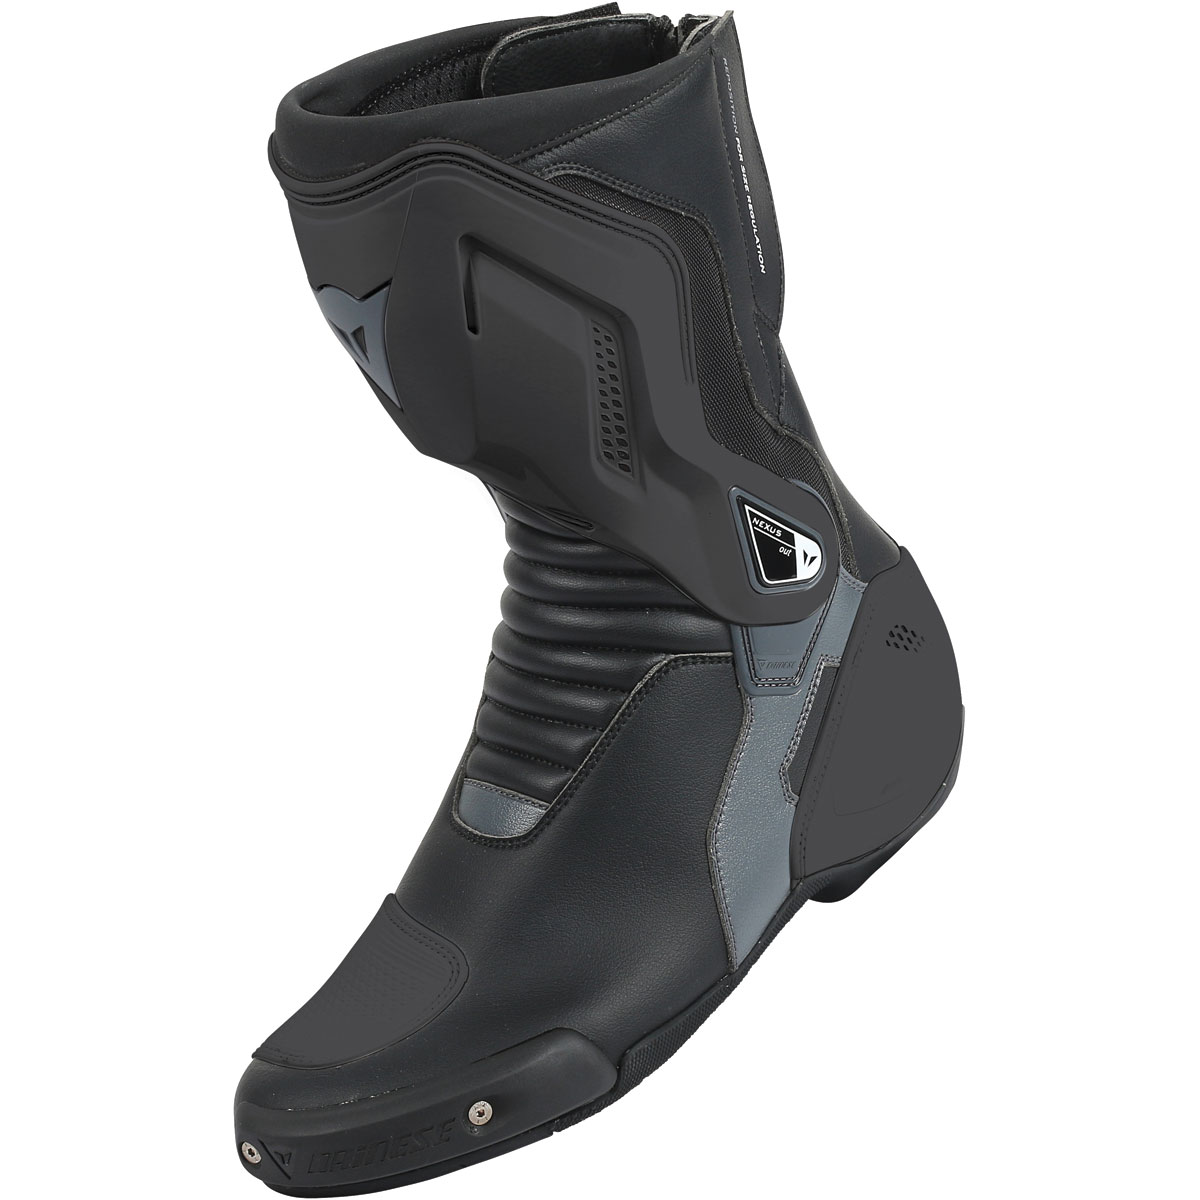 The Dainese Nexus Boots: Top 10 Best Sportsbike & Racing Motorcycle Boot